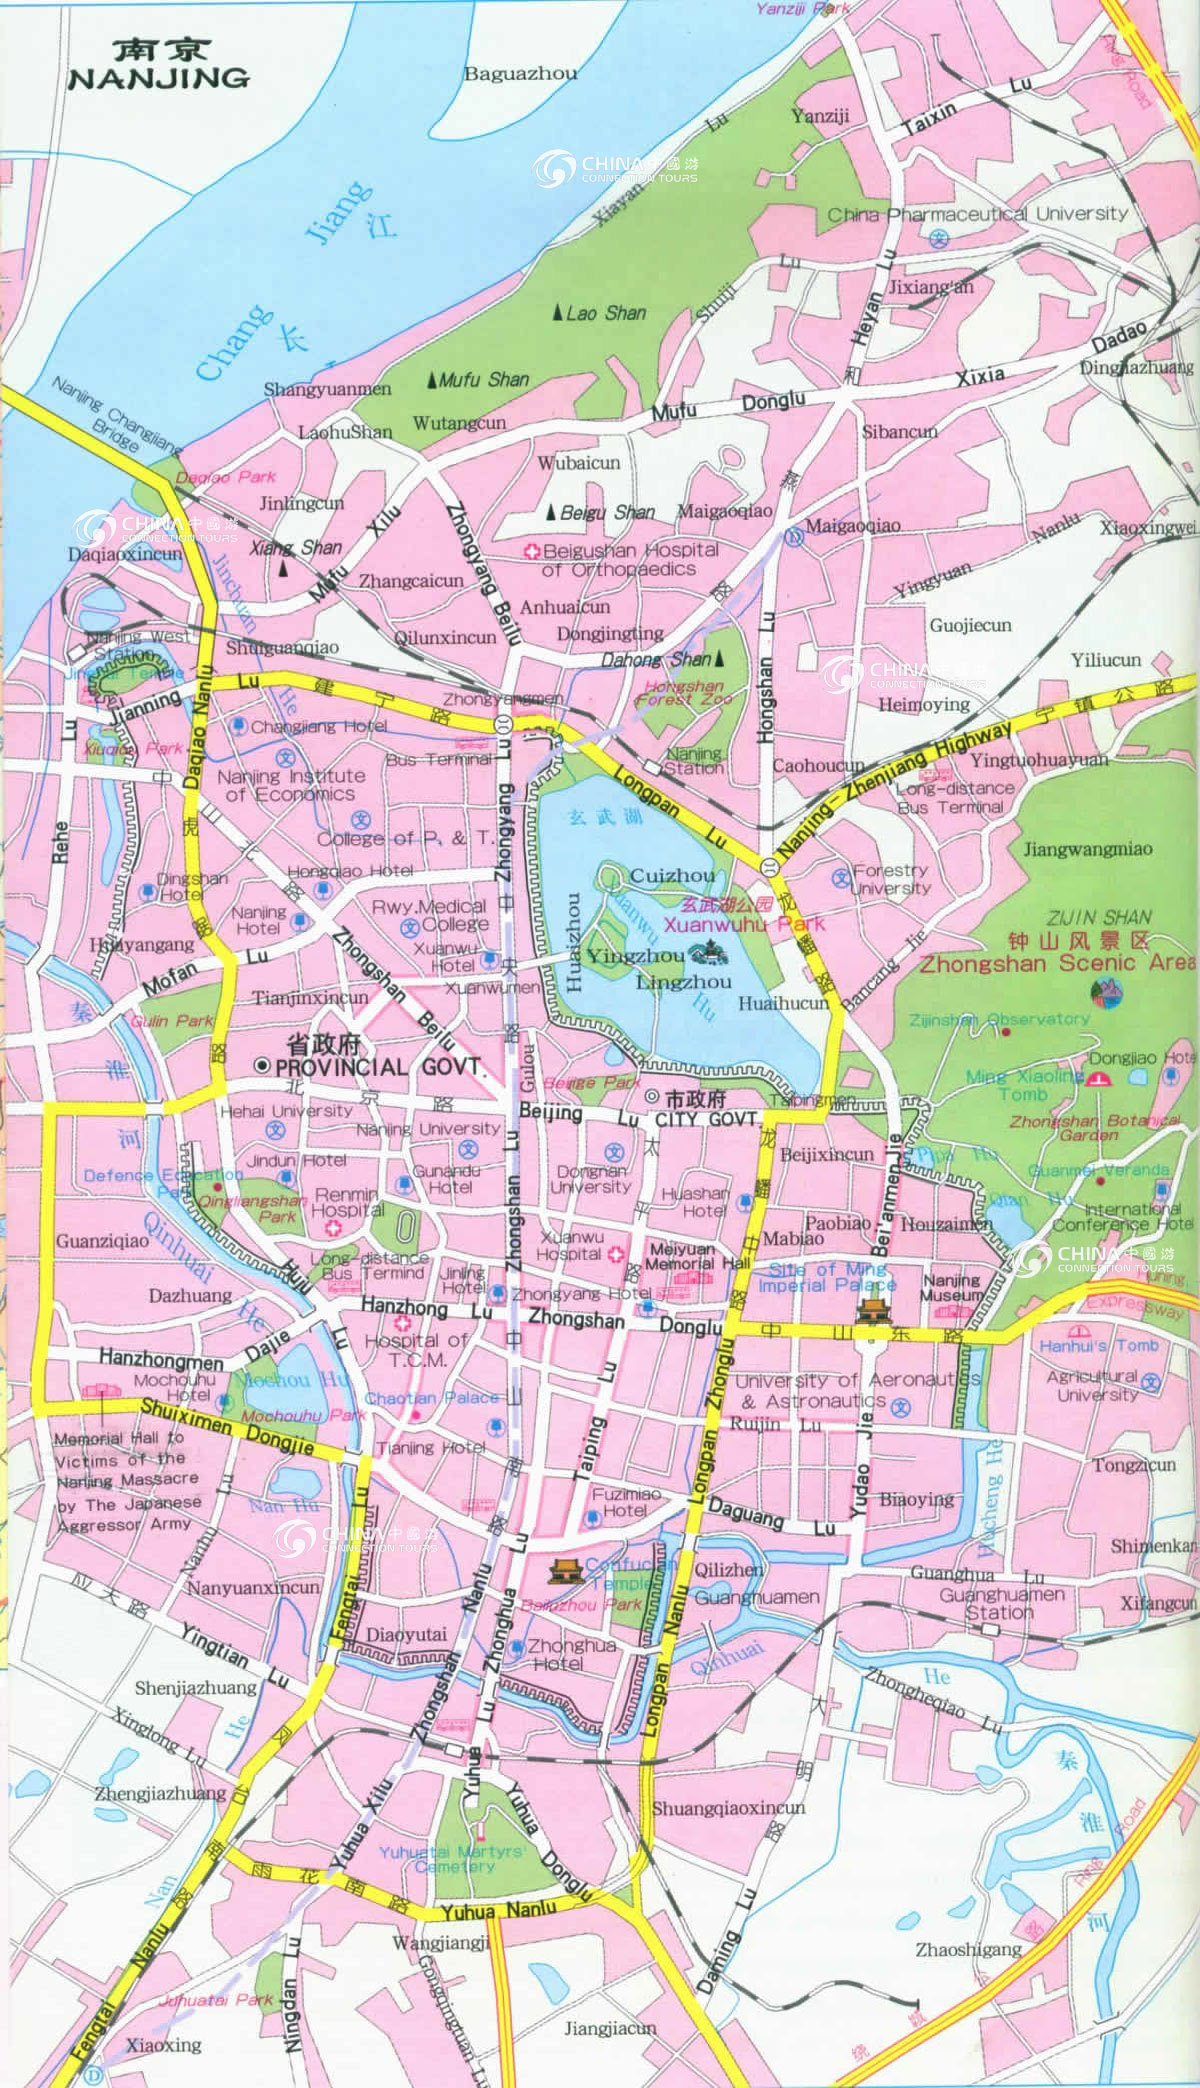 Nanjing City Map China Nanjing City Map Nanjing Travel Guide - Nanjing map